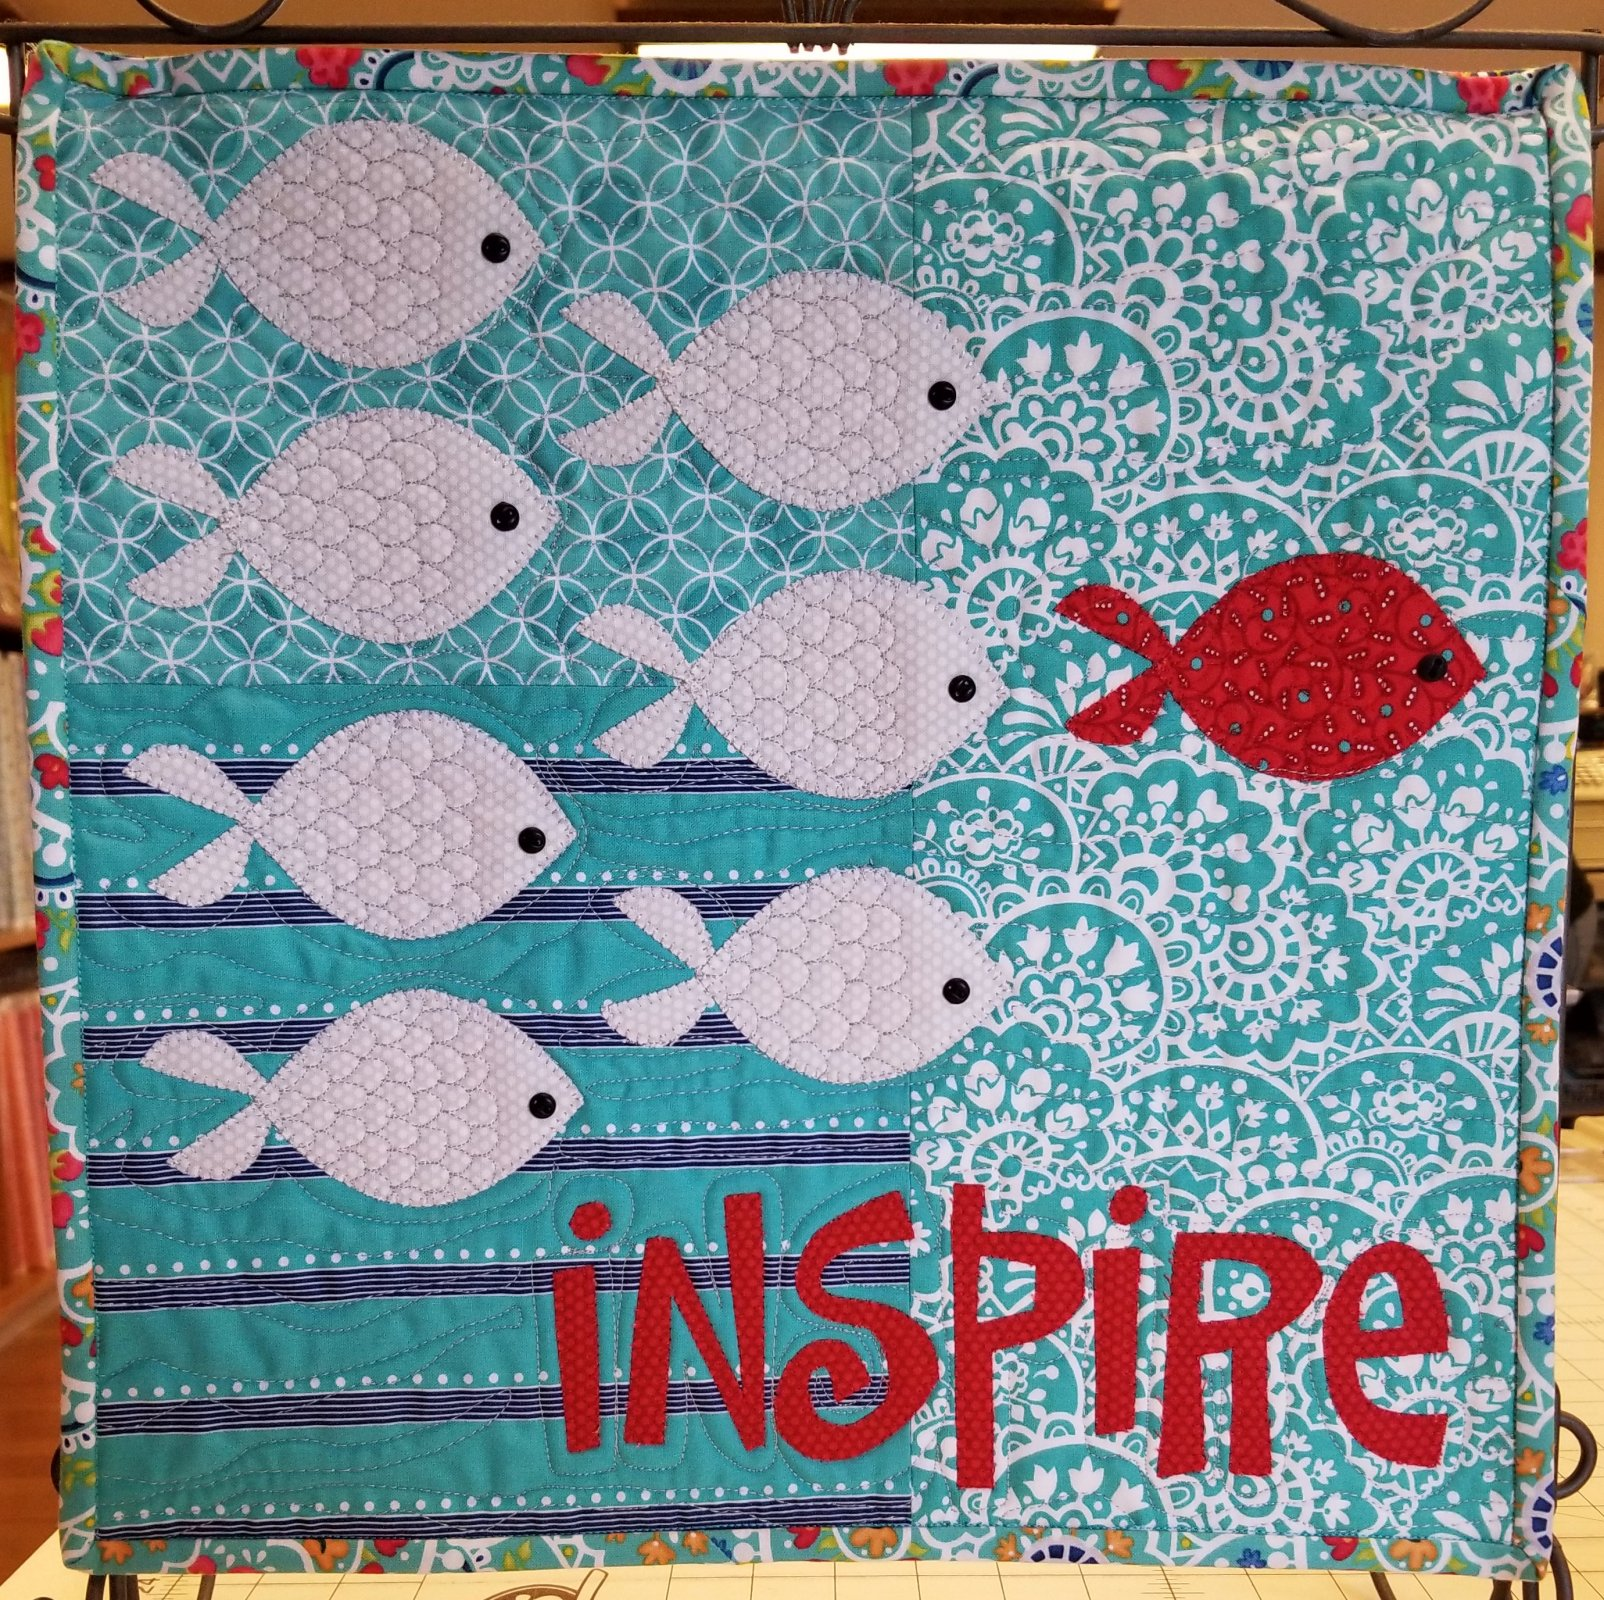 Imagine - Inspire Block